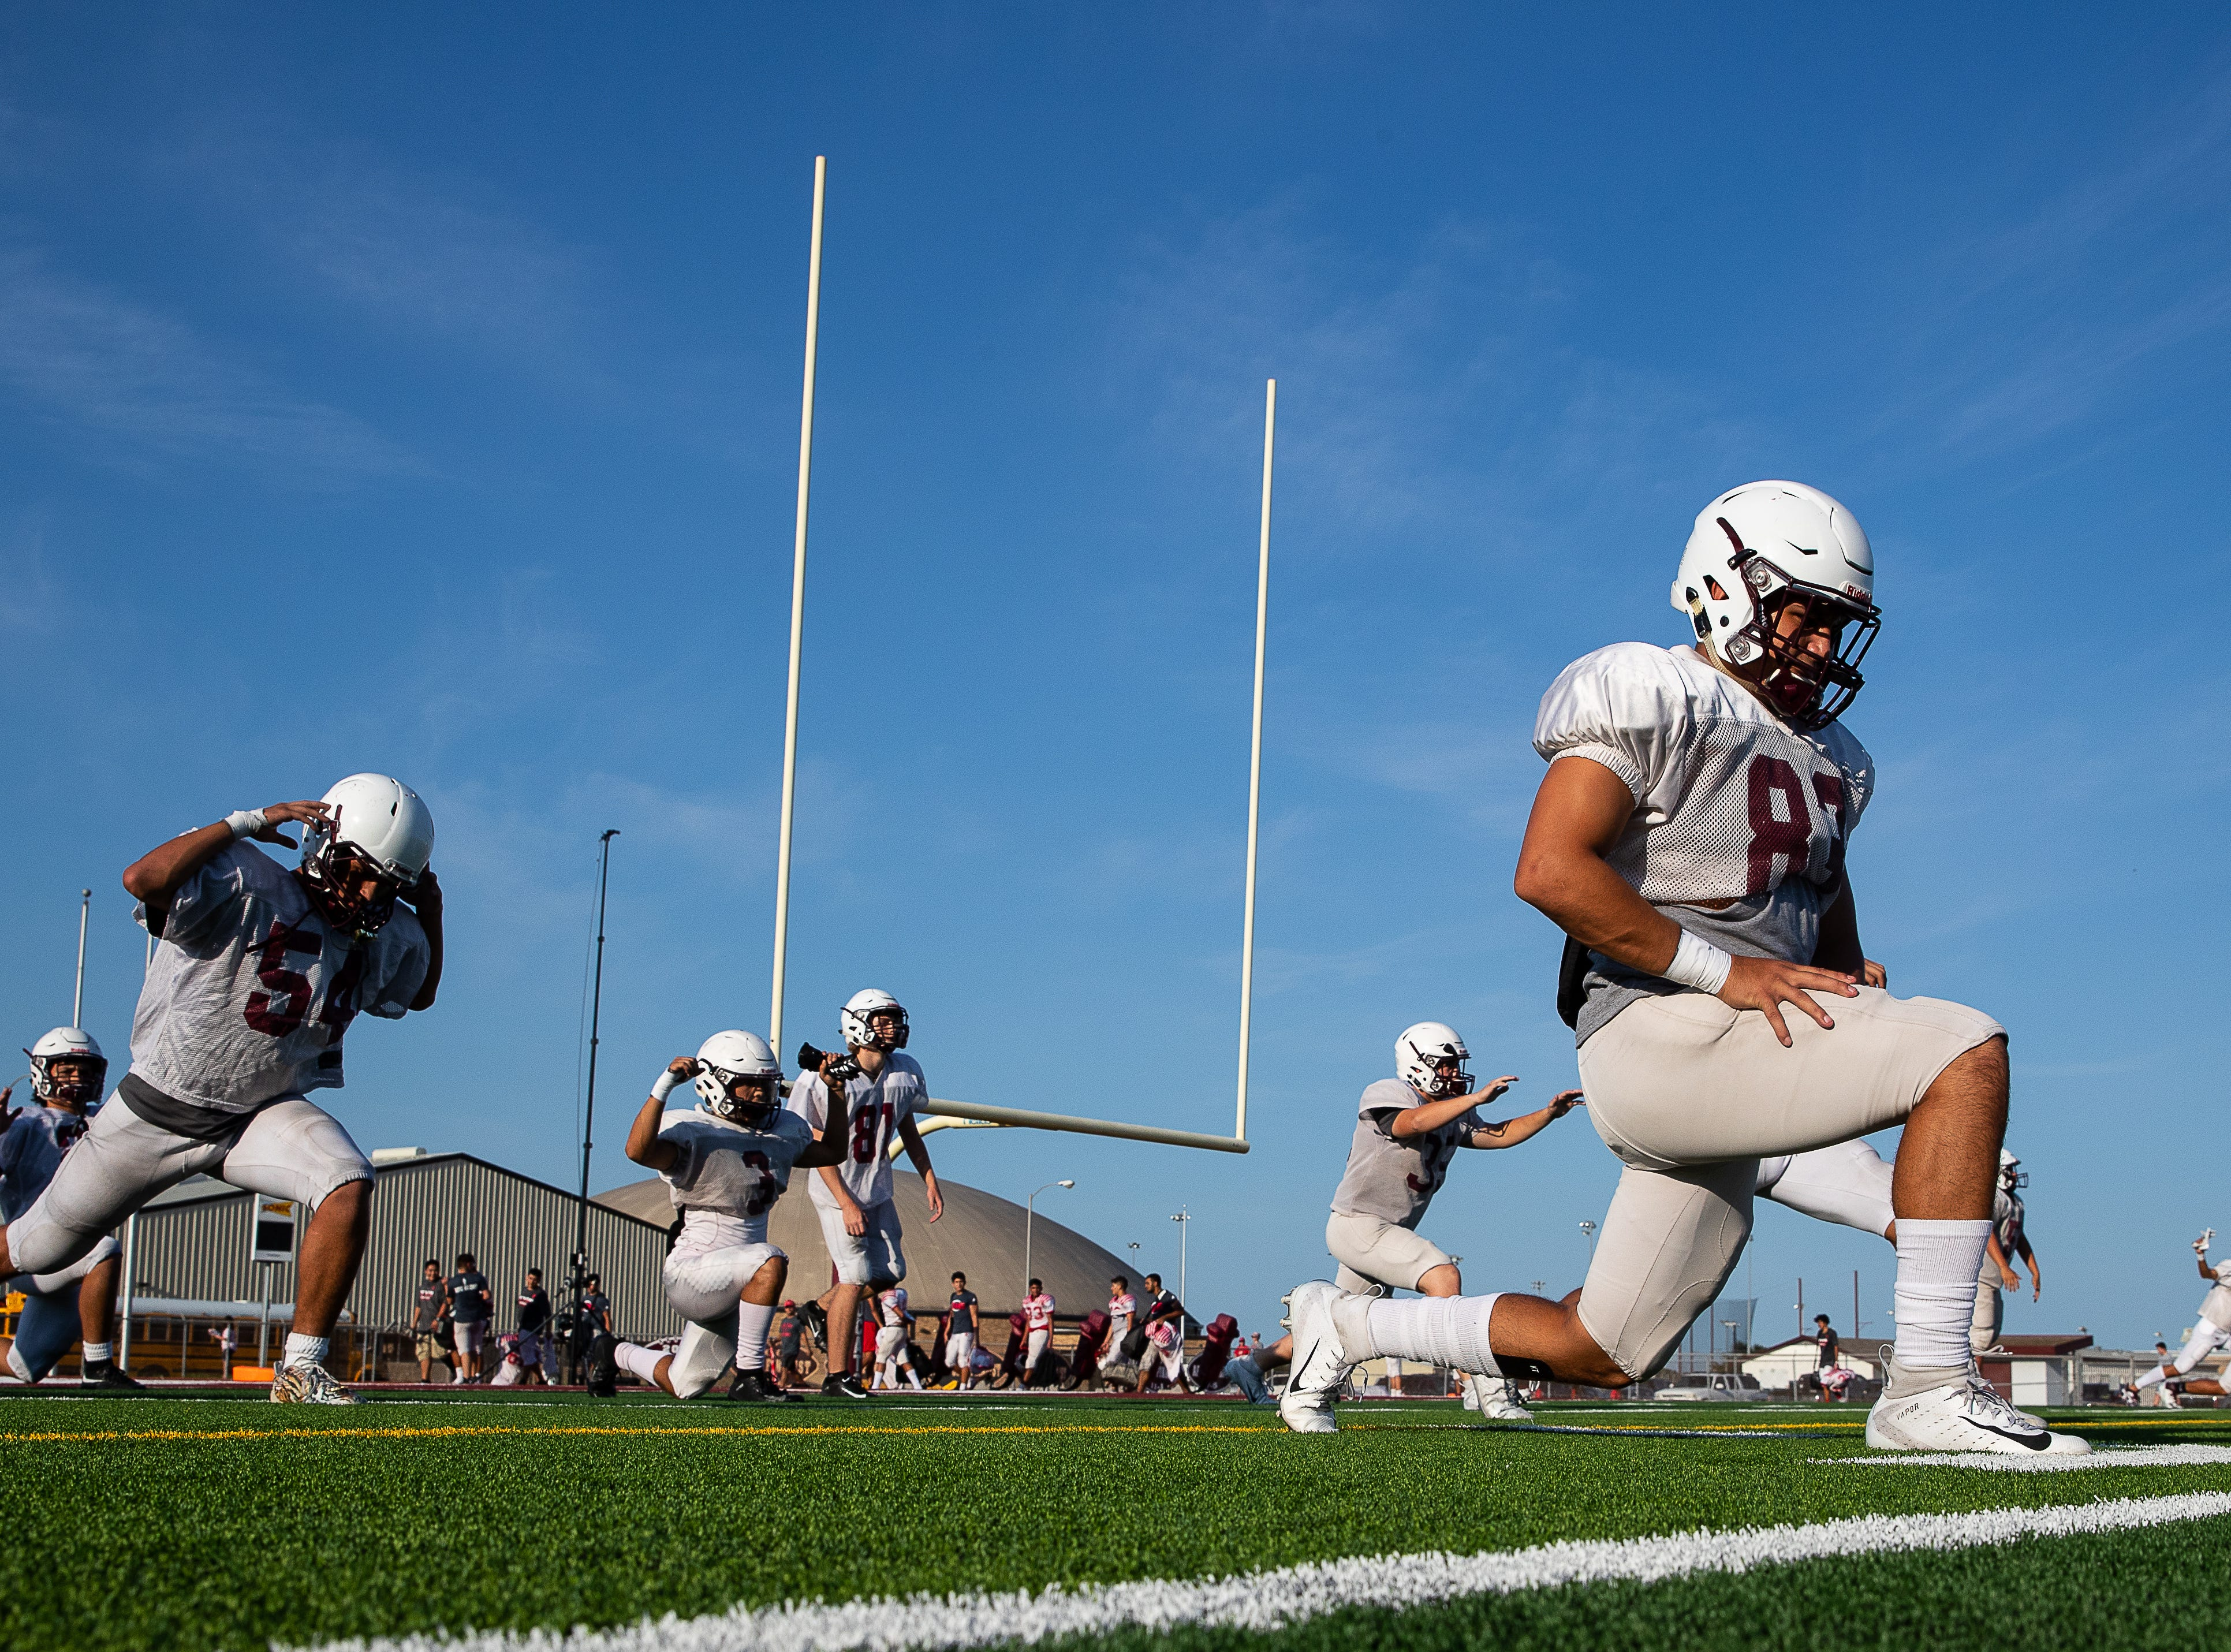 Calallen warms up on the field before their scrimmage against Ray at Wildcat Stadium on Friday, Aug, 24, 2018.